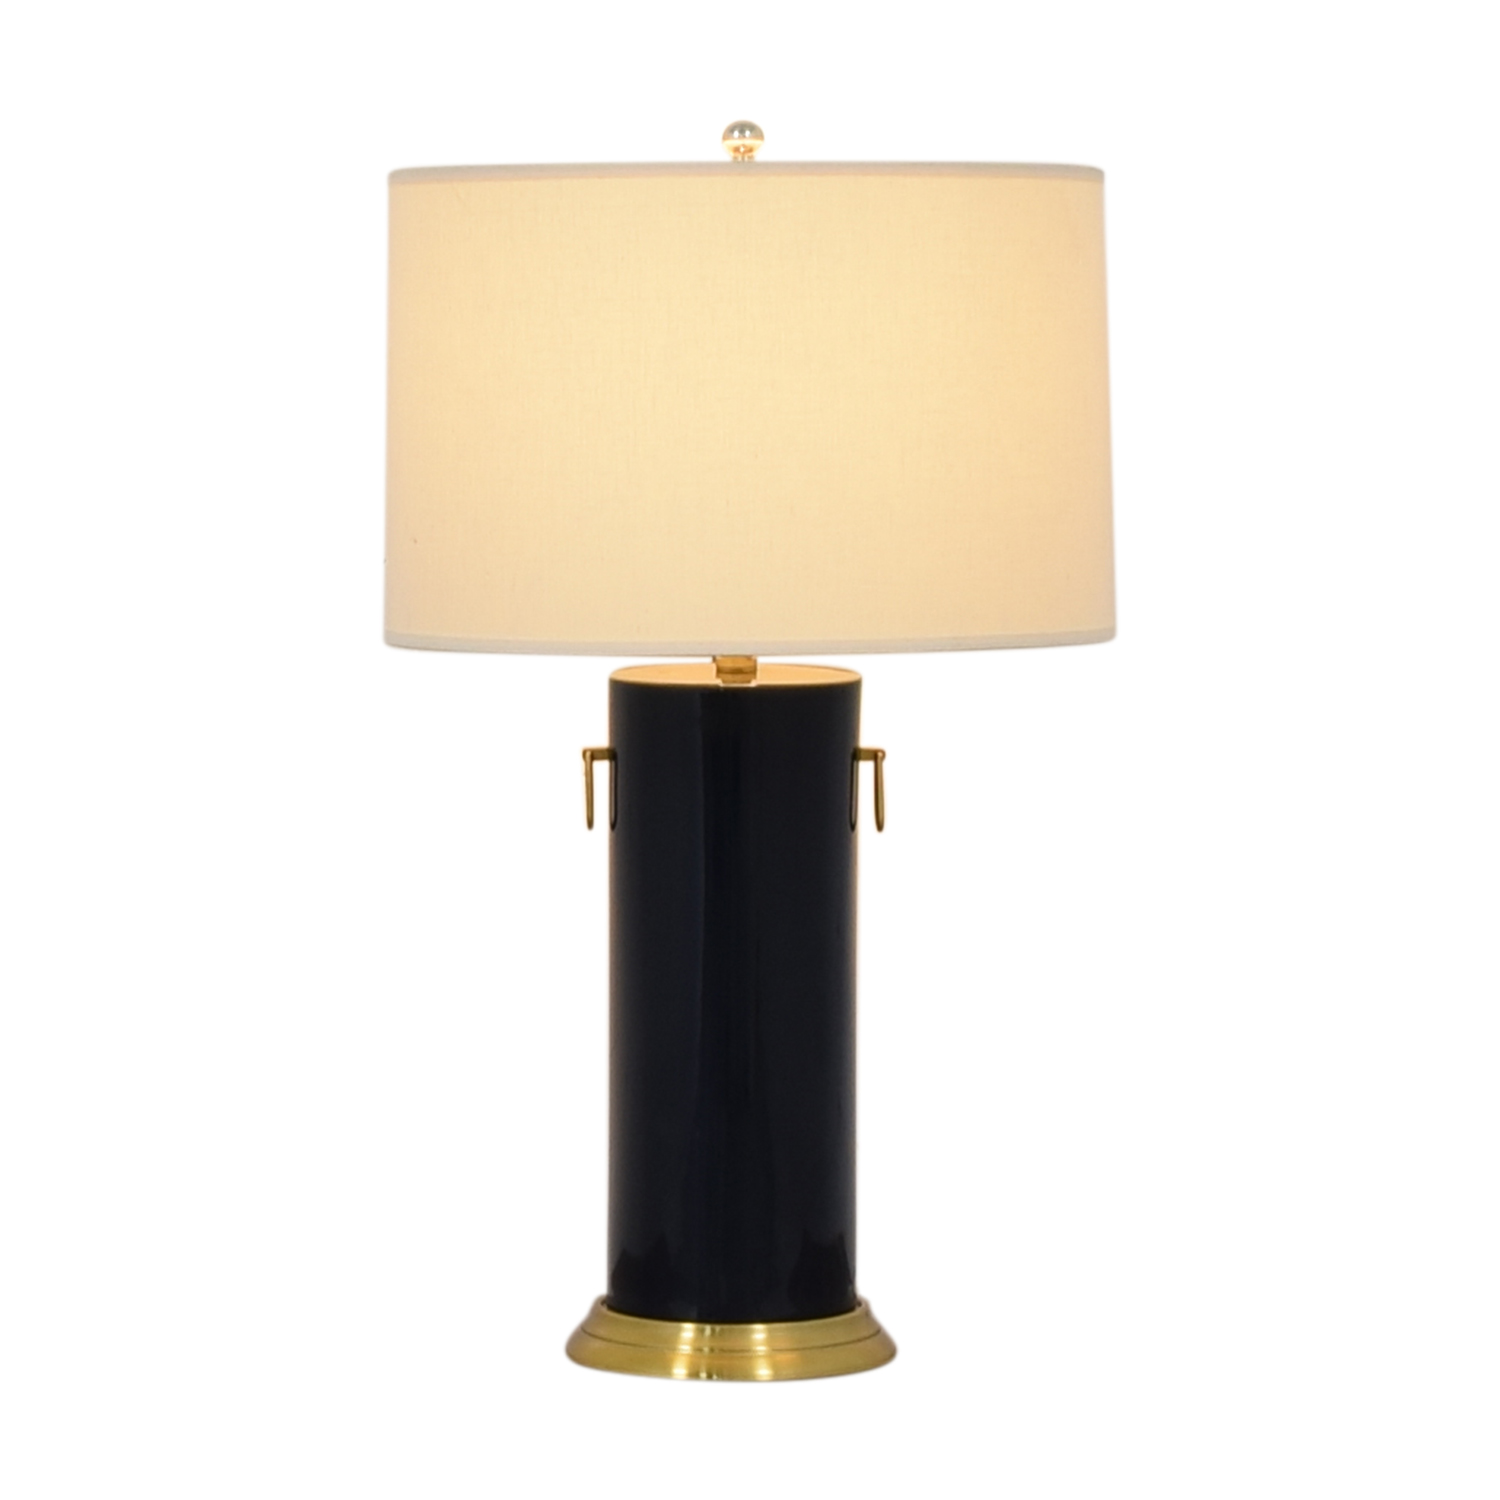 buy Pottery Barn Pottery Barn Navy Table Lamp online